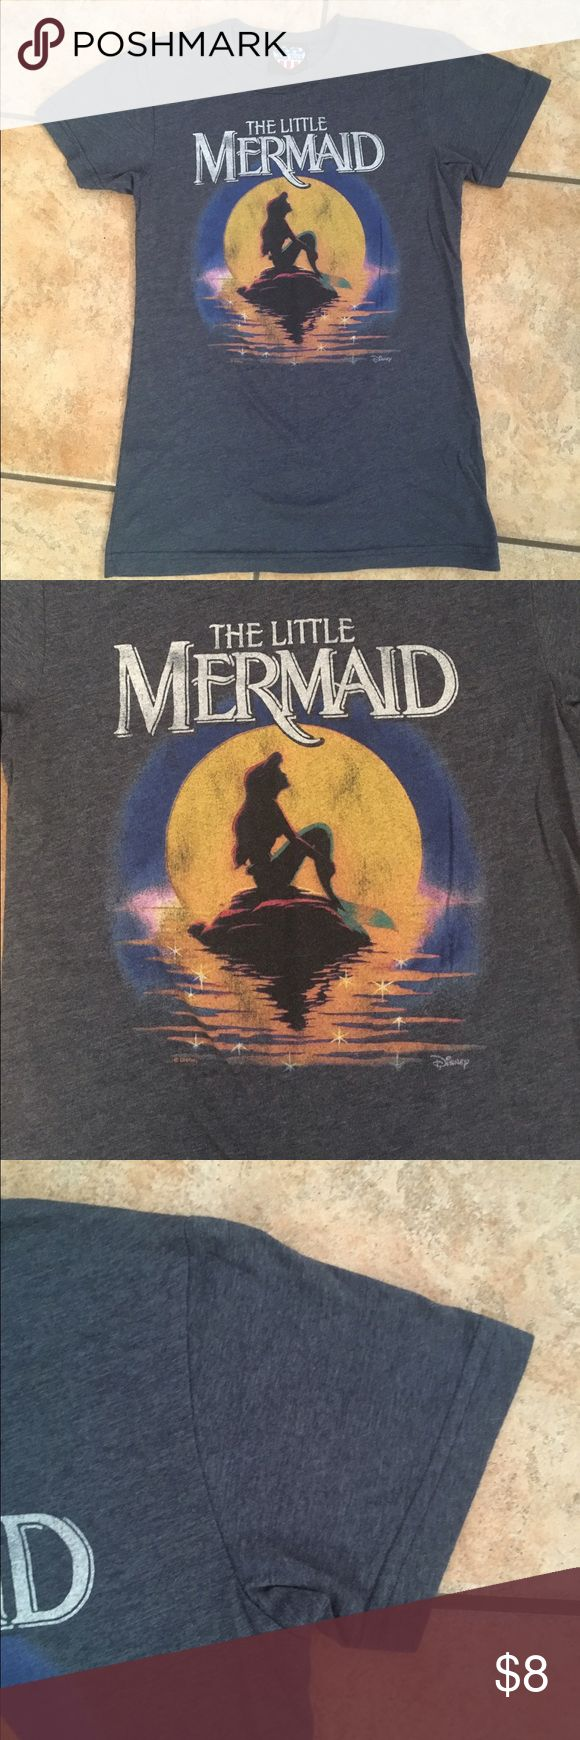 Junk Food 'The Little Mermaid' T-Shirt (Large) Junk Food 'The Little Mermaid' Blue Skinny Fit T-Shirt (Size Large). *Excellent Condition!! Junk Food Tops Tees - Short Sleeve